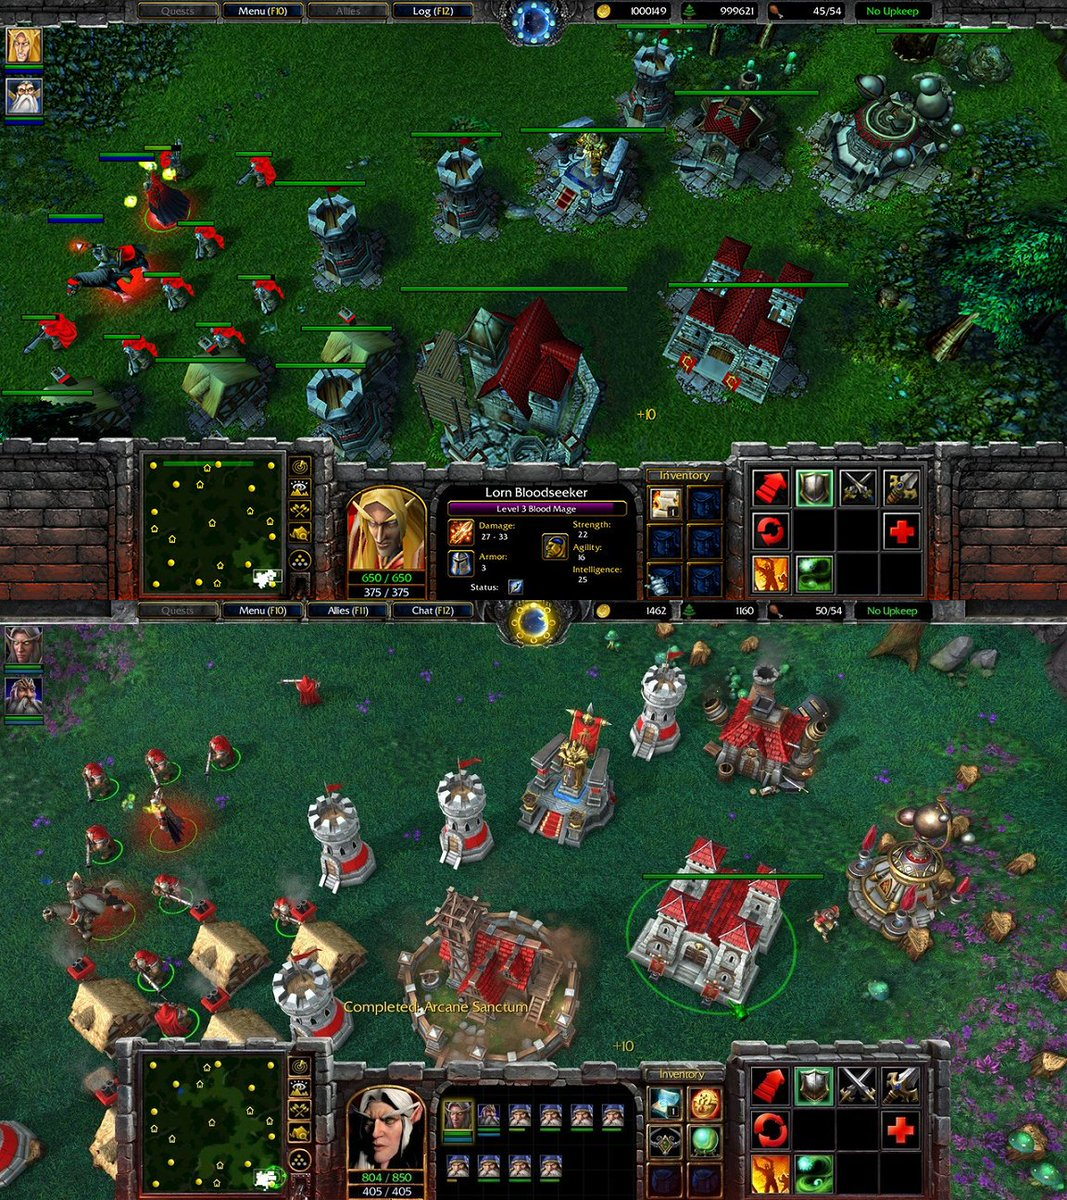 When is Dota 2 getting a remake?! 🙃